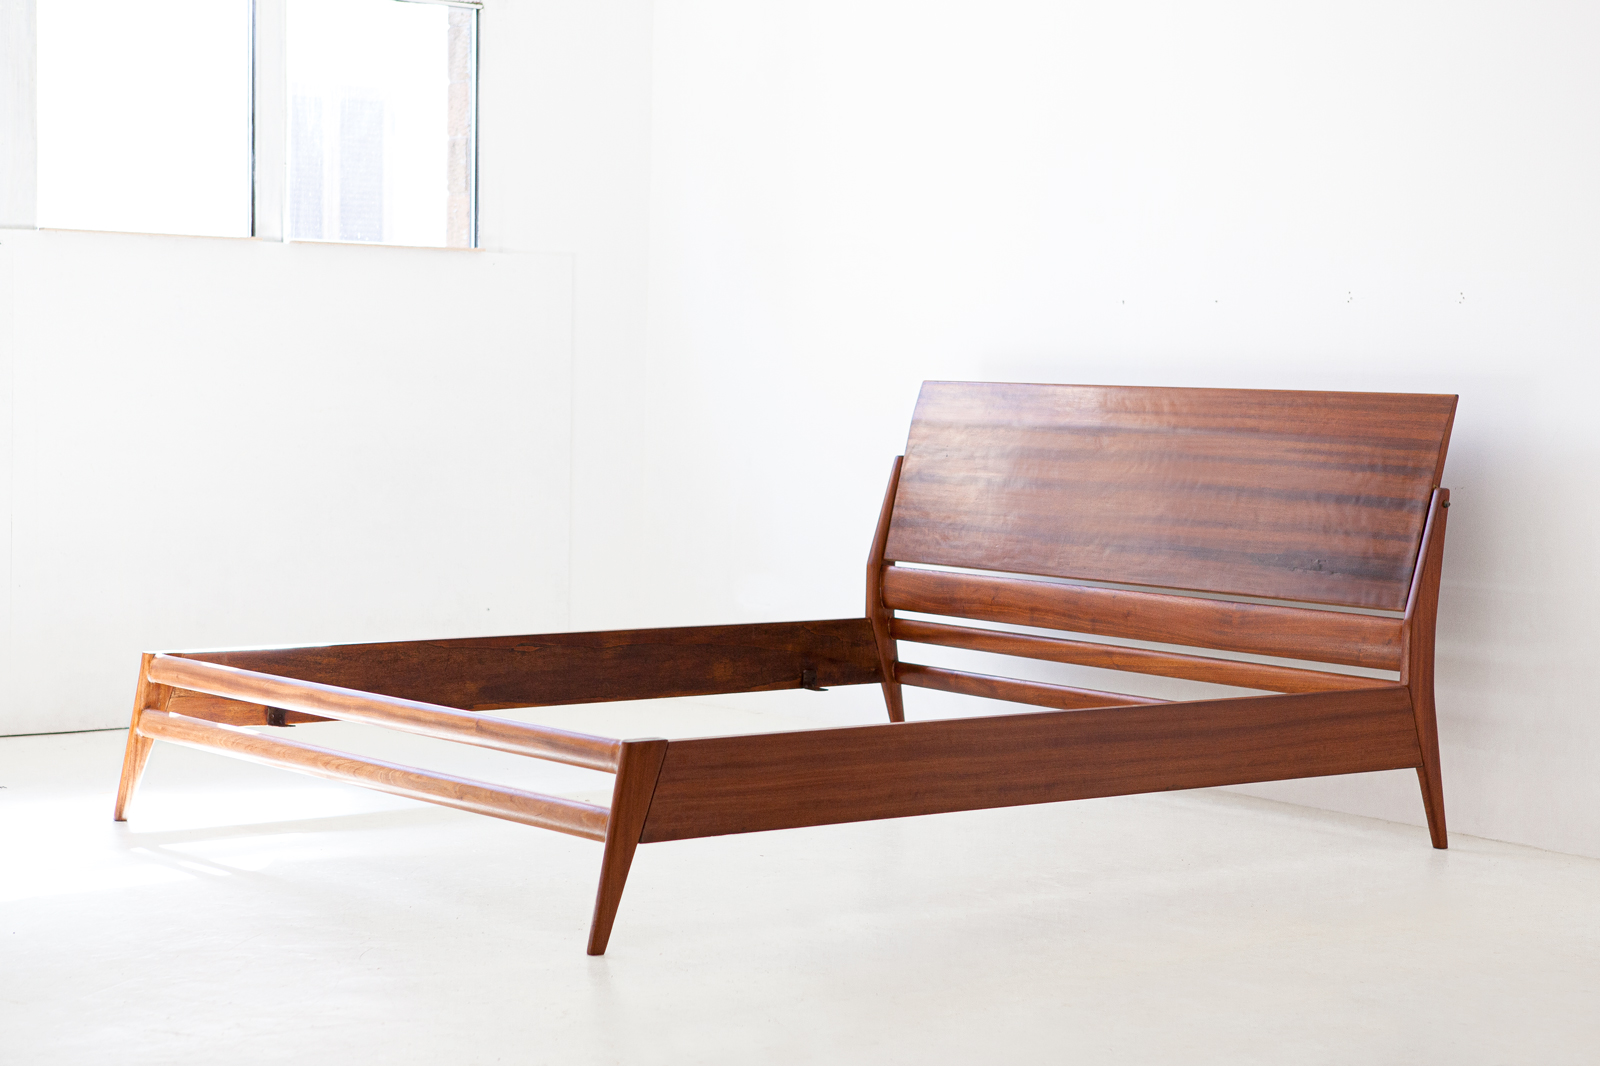 1950s-mahogany-double-bed-by-silvio-cavatorta-4-of101